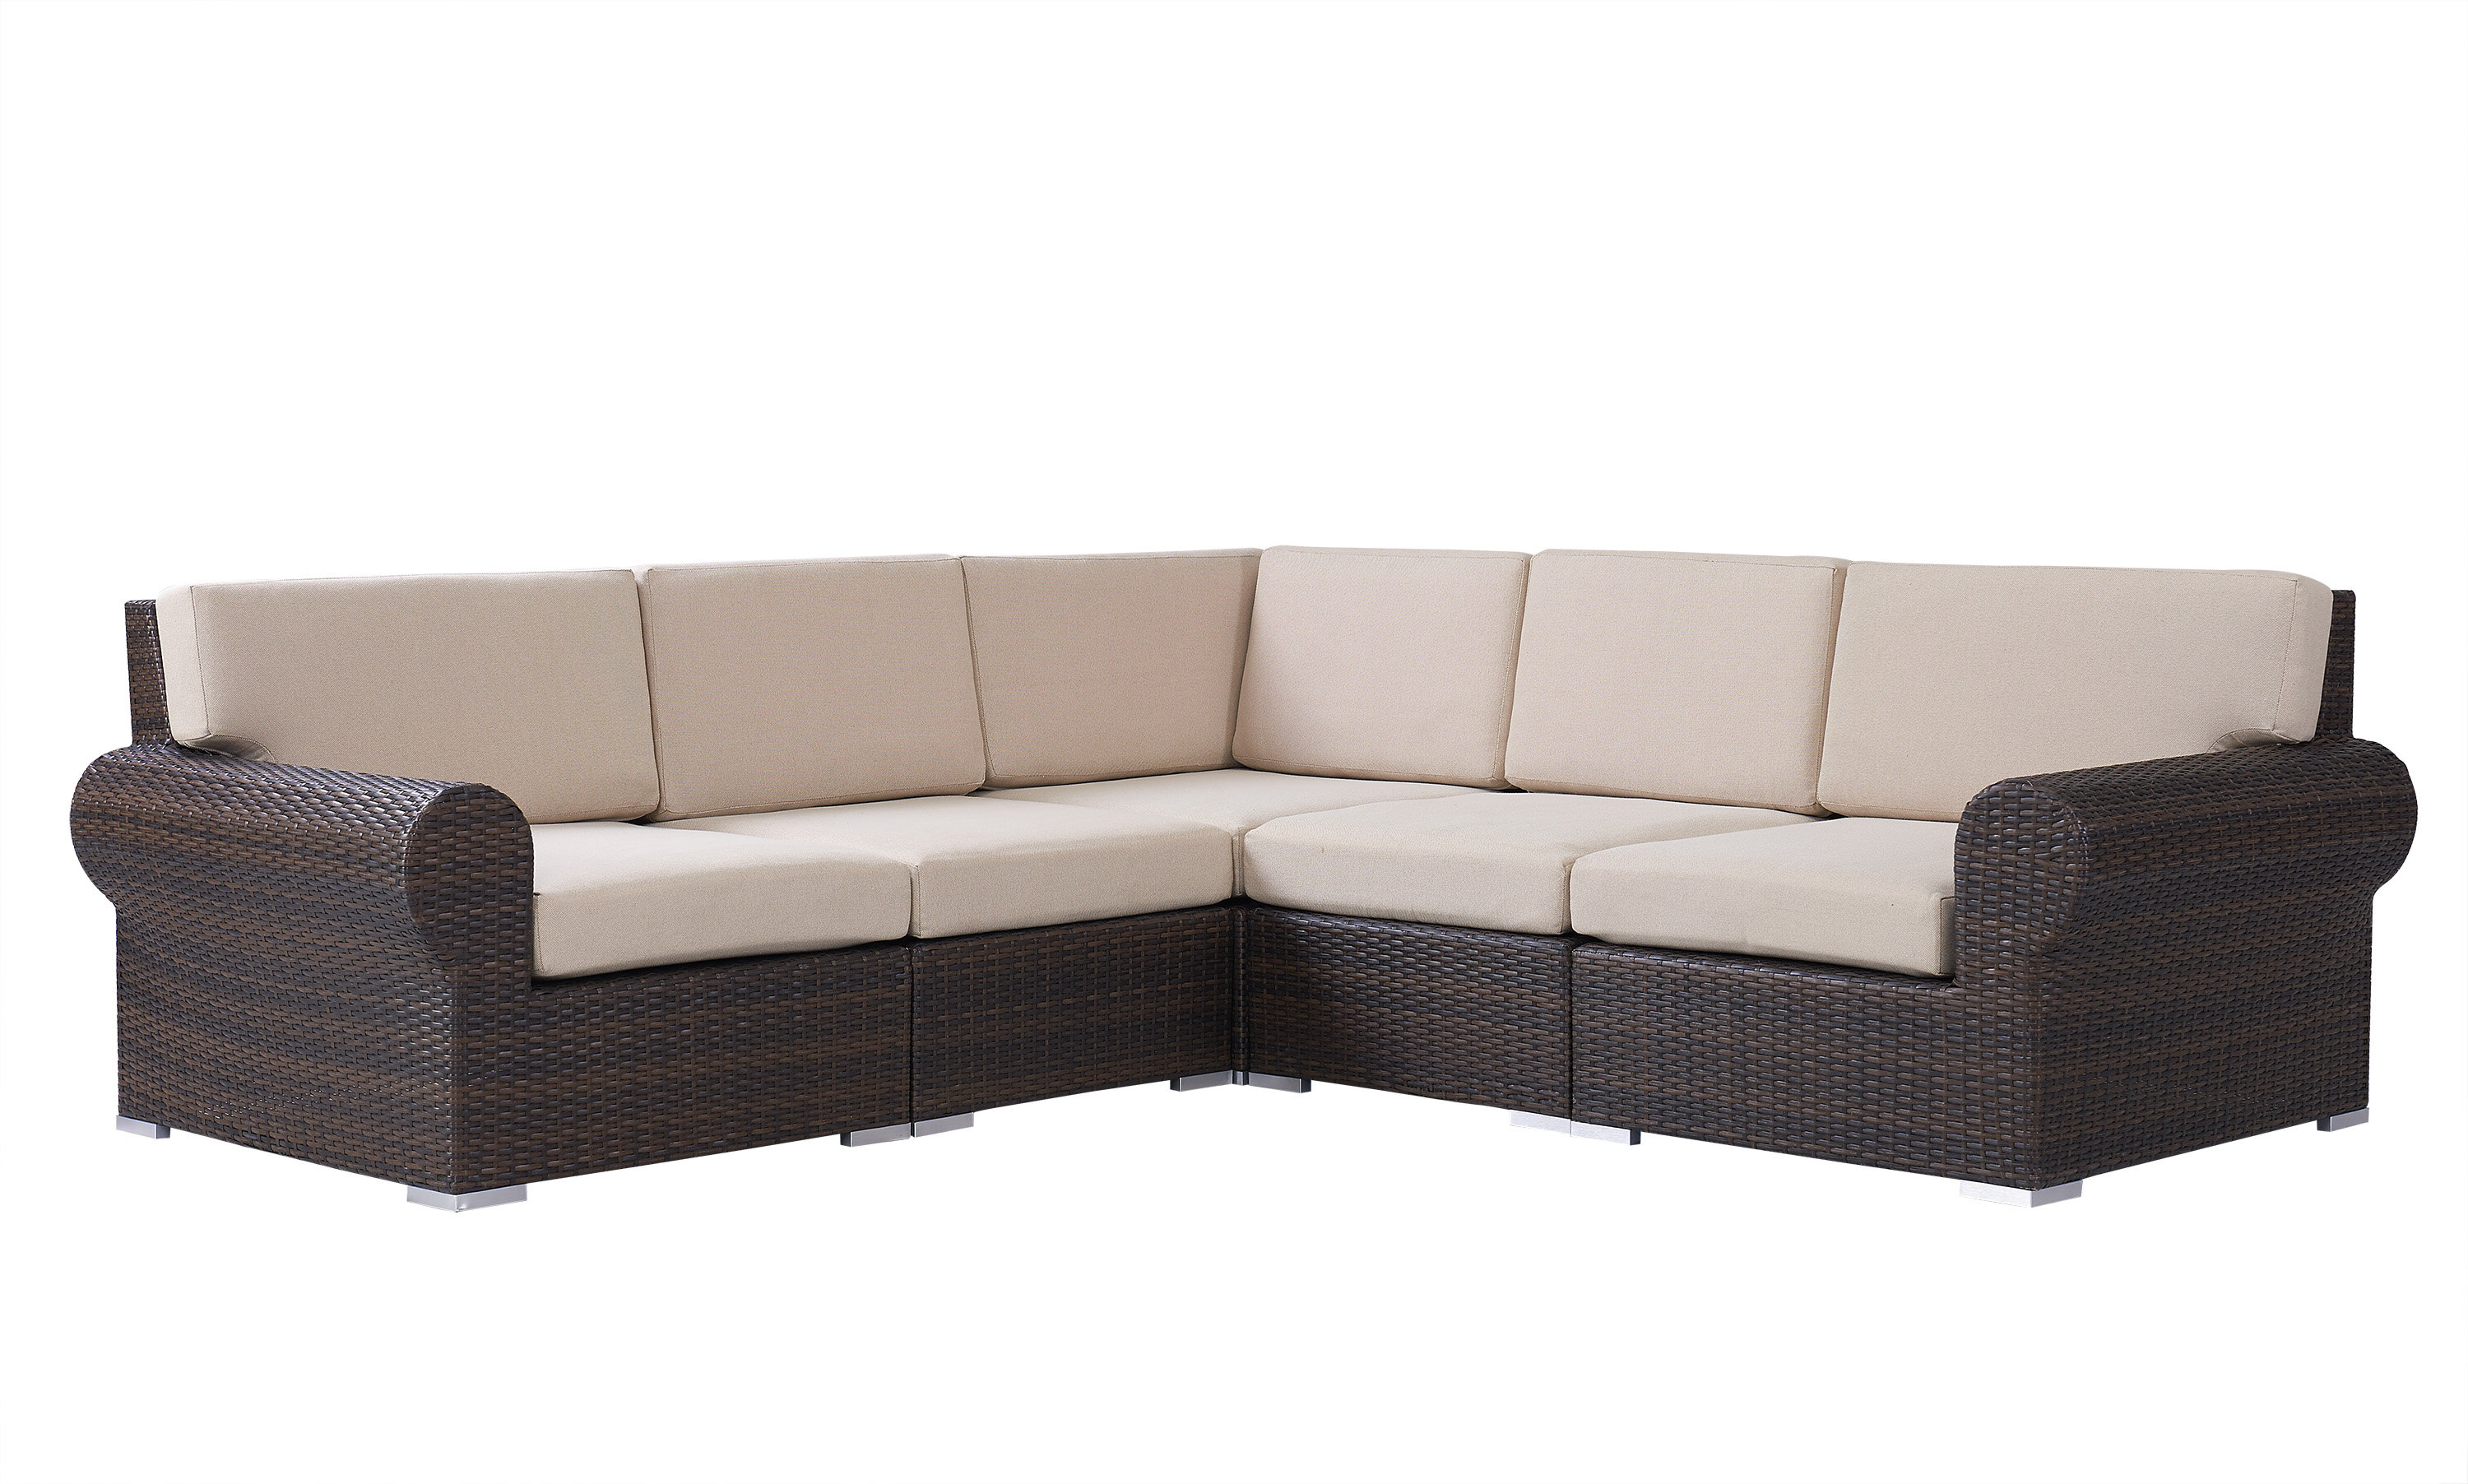 2019 Brookhaven Patio Sectional With Cushions Pertaining To Patio Sofas With Cushions (View 1 of 20)